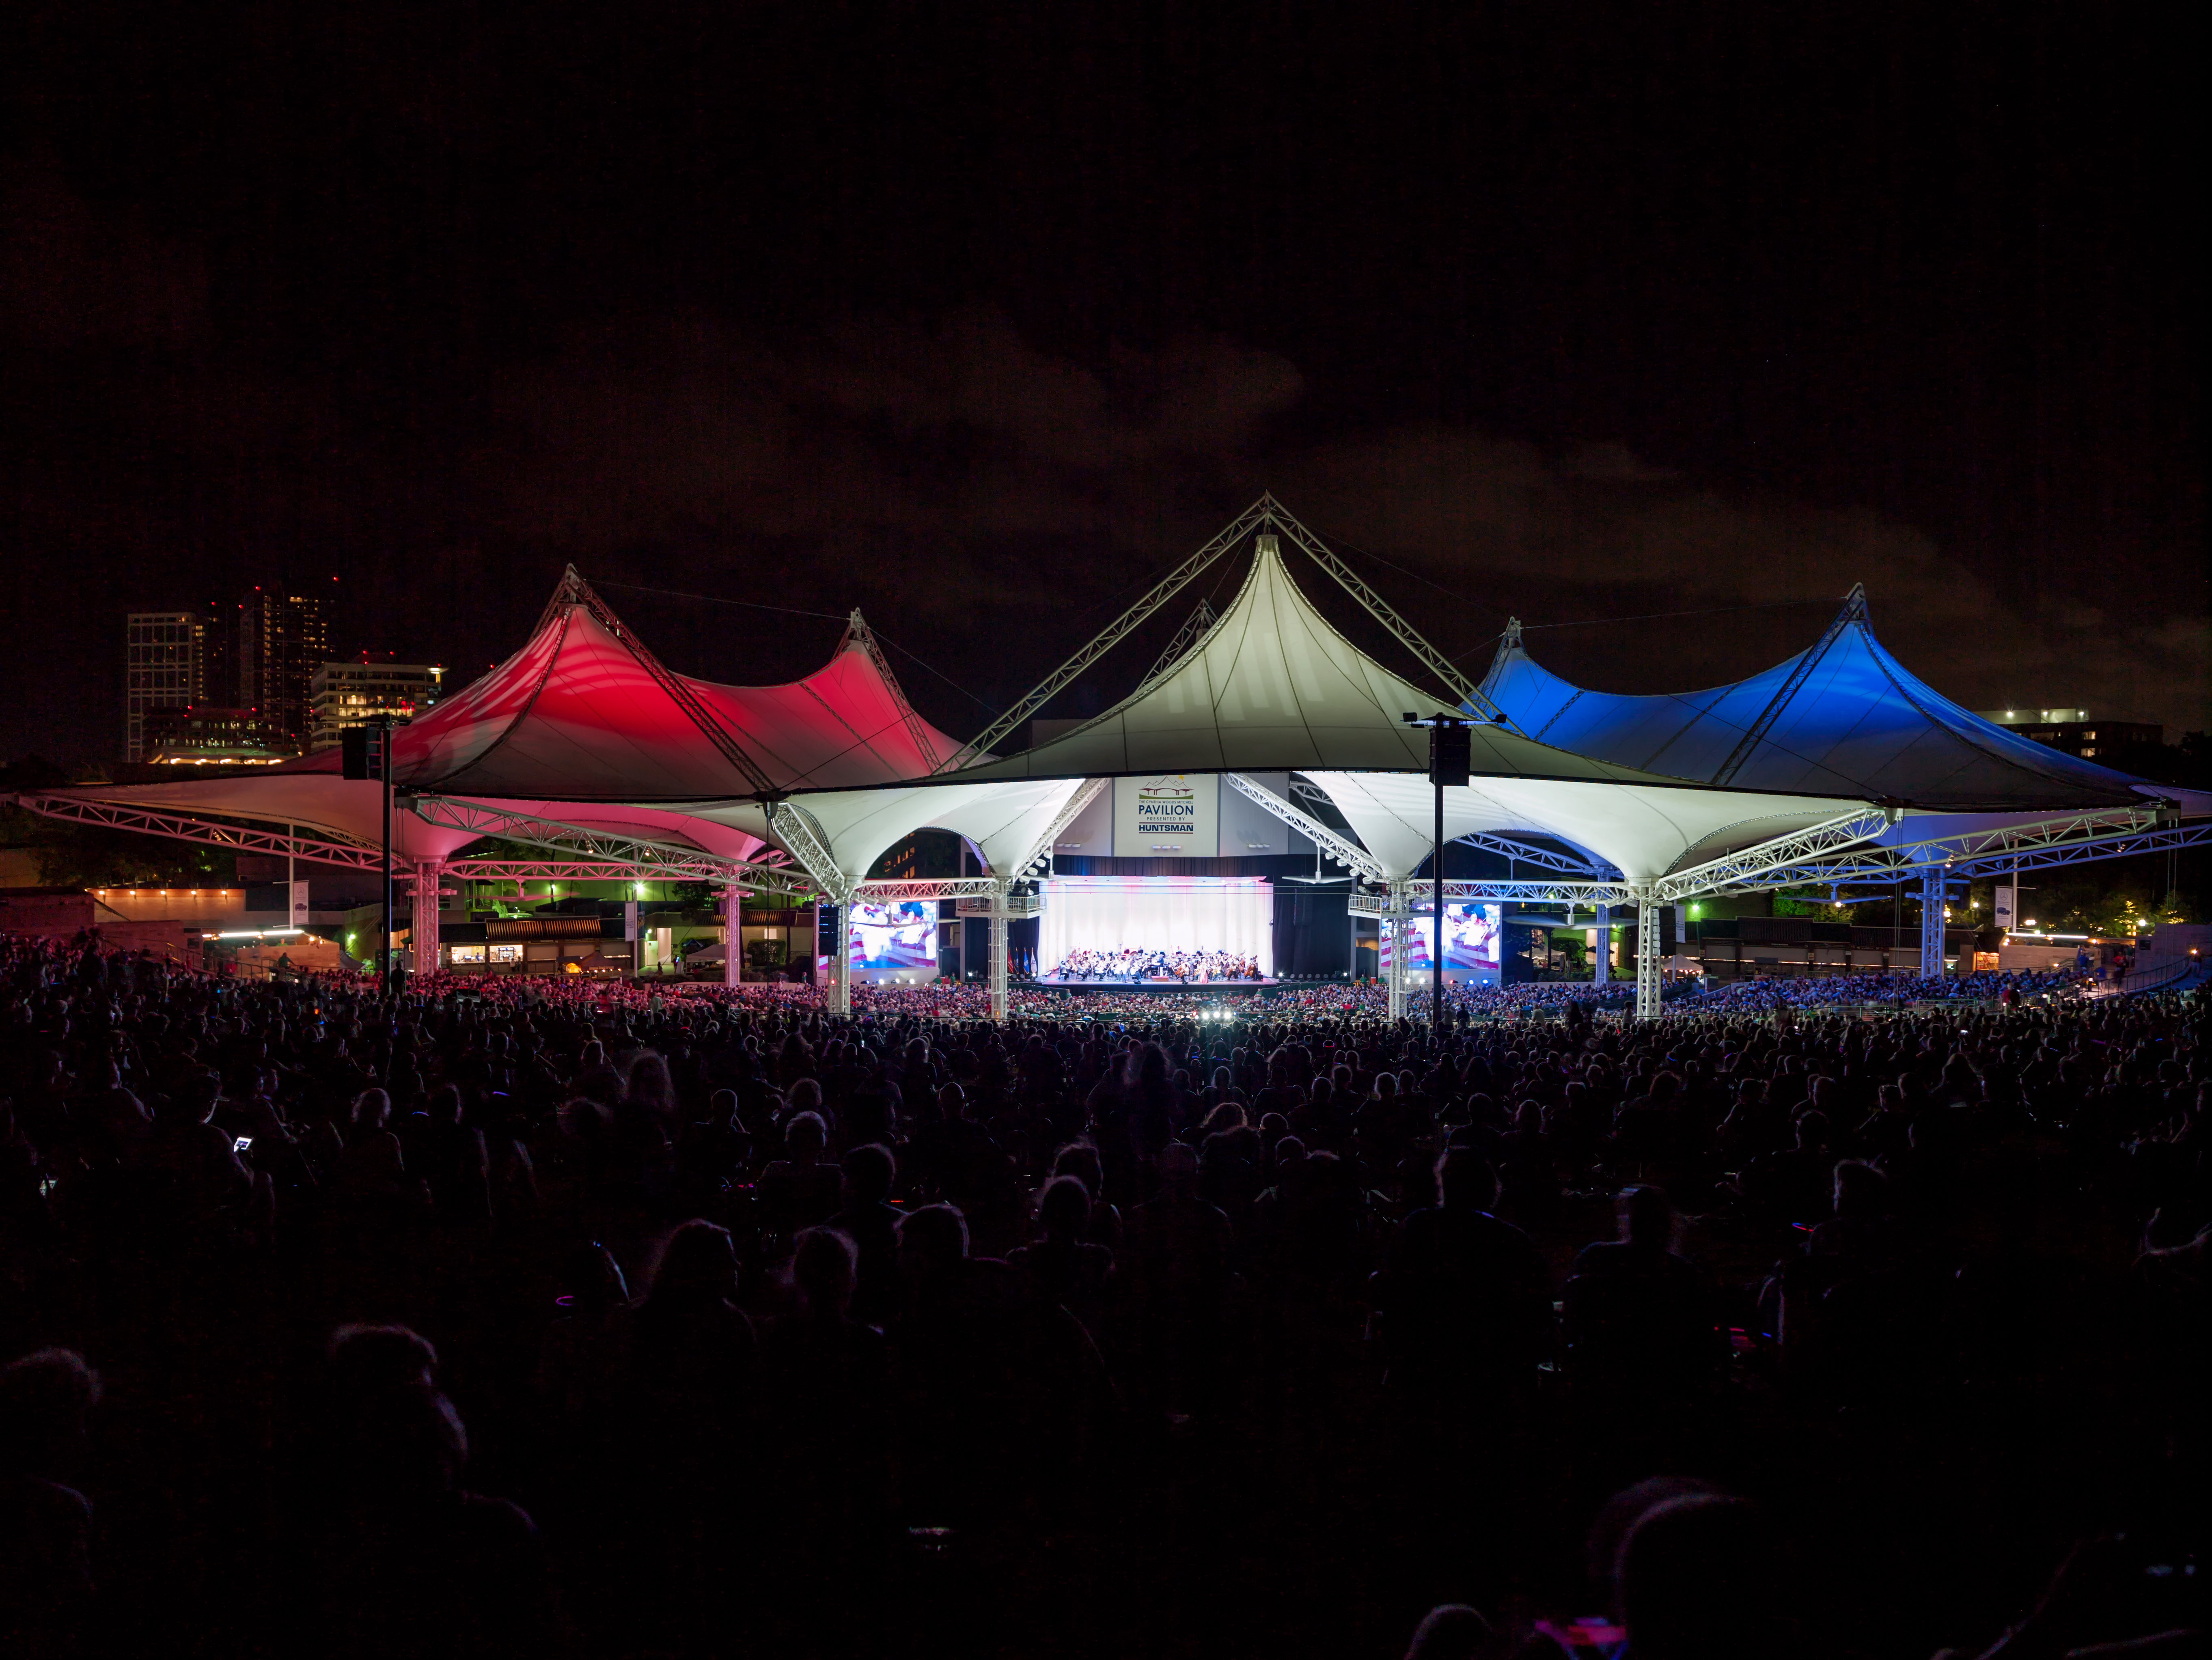 celebrate america at the cynthia woods mitchell pavilion's annual